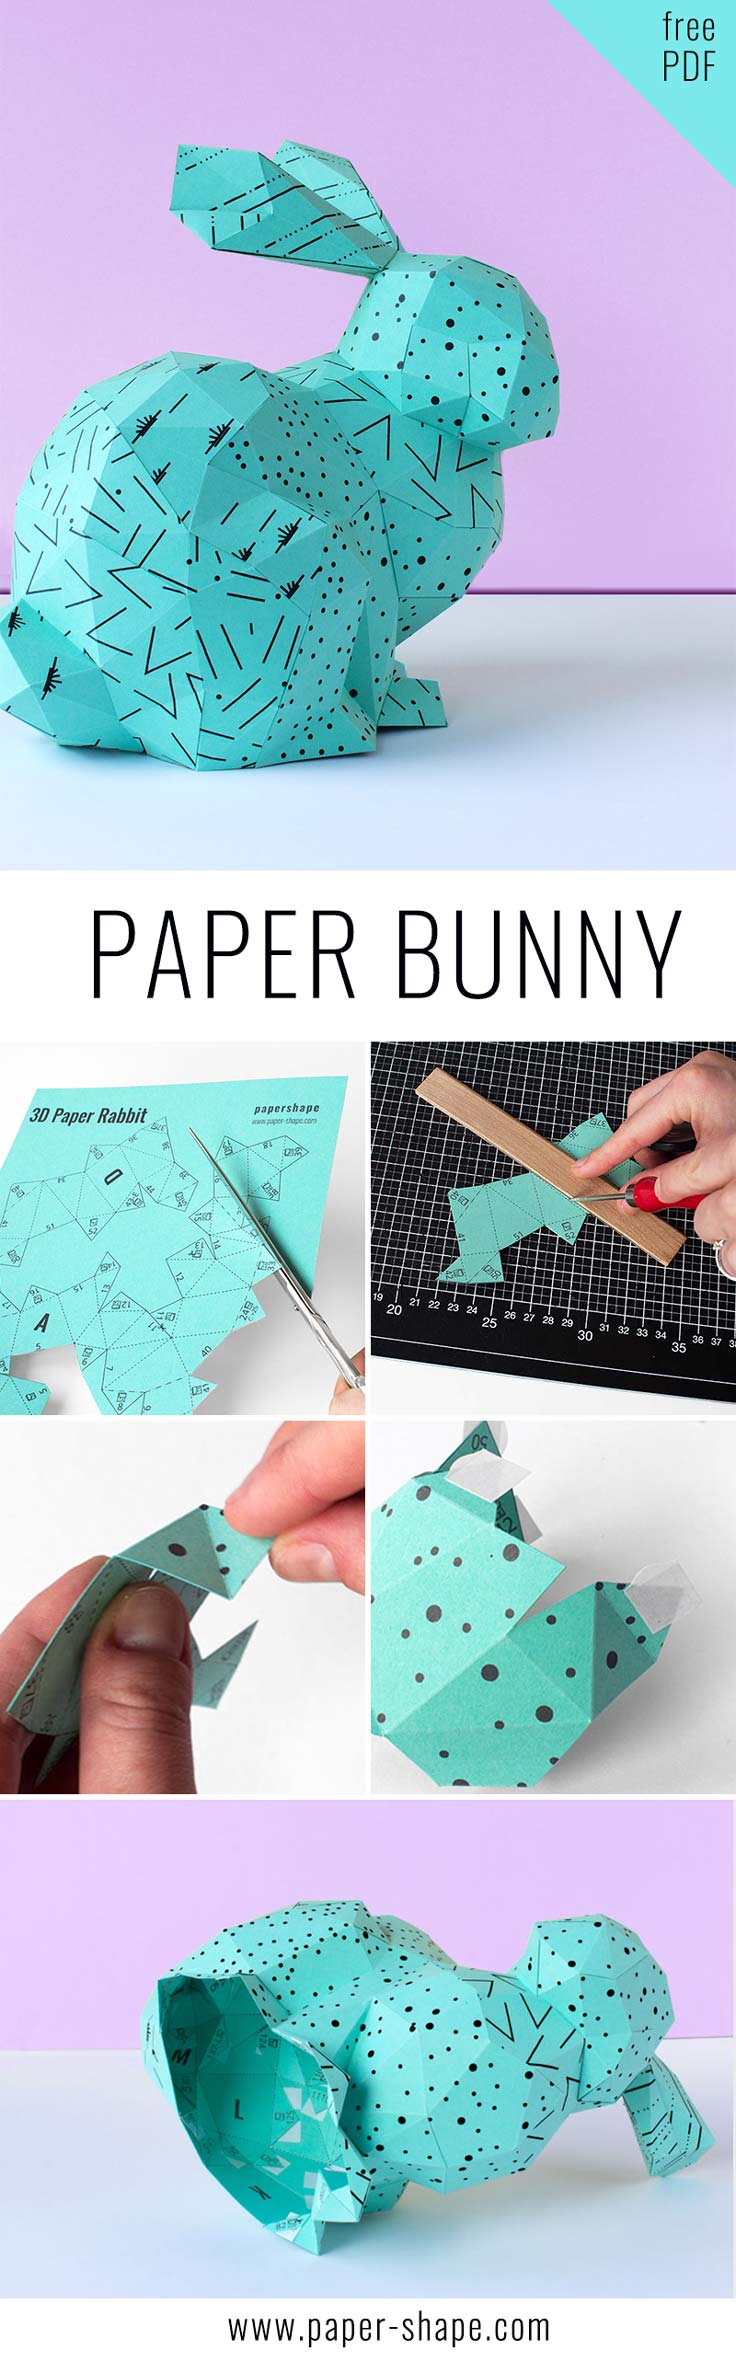 DIY Easter Rabbit Craft Bunny From Paper In 3D Cool Papercraft Model To